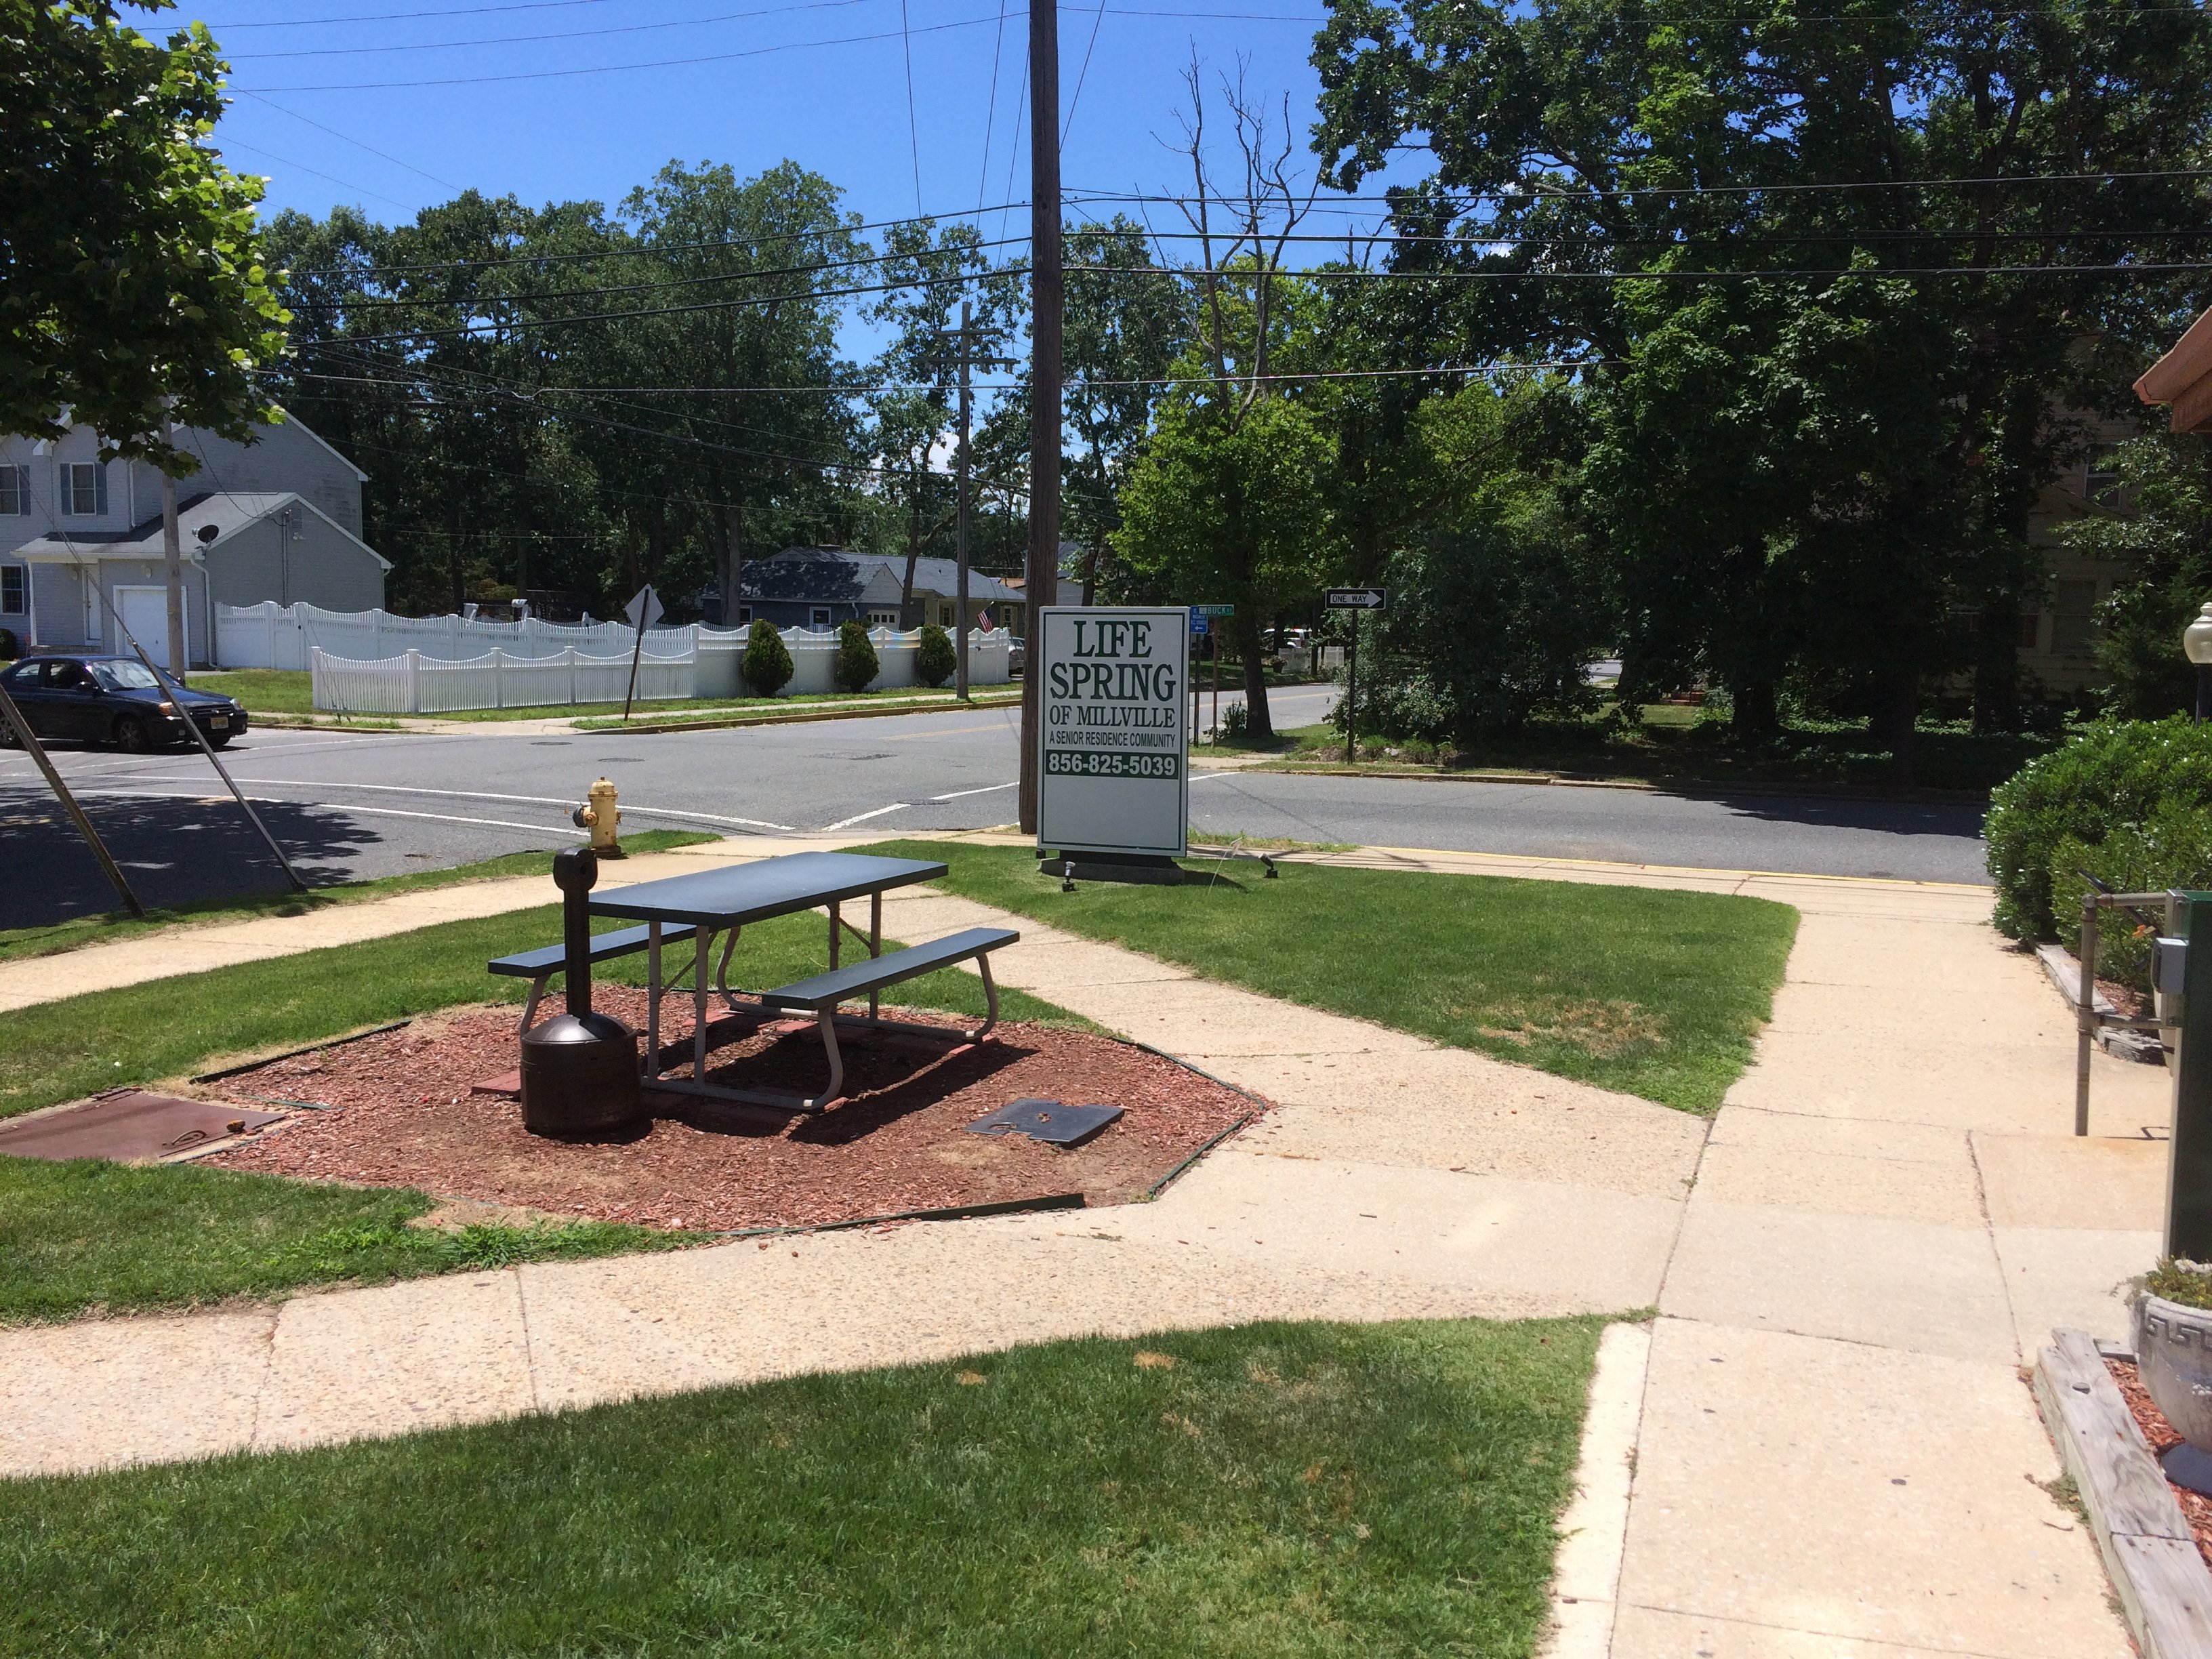 Lifespring Of Millville 1200 North High St Millville